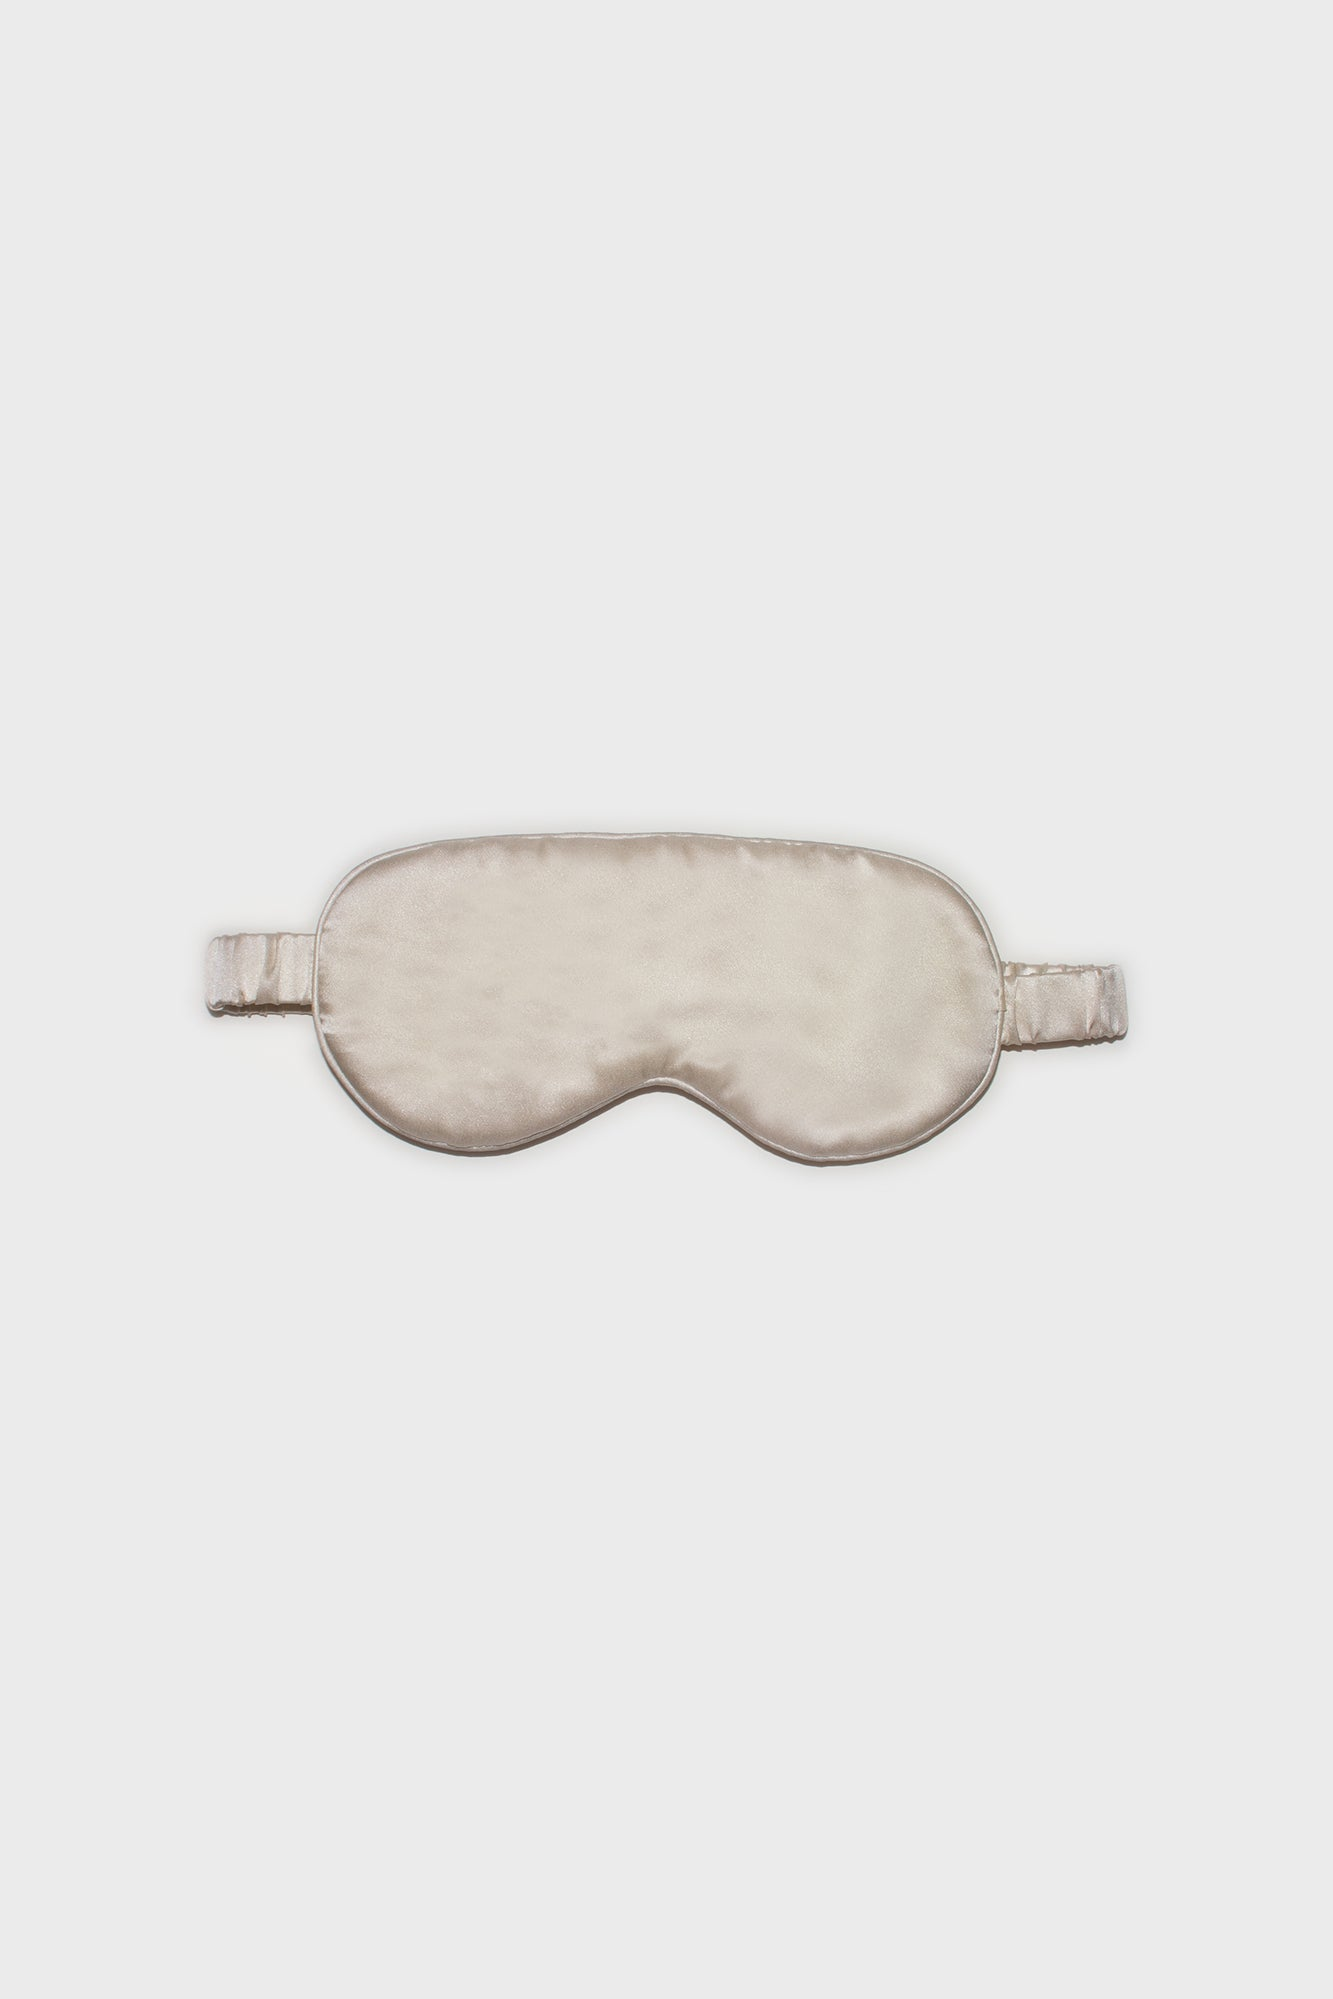 Champagne Silk Eye Mask